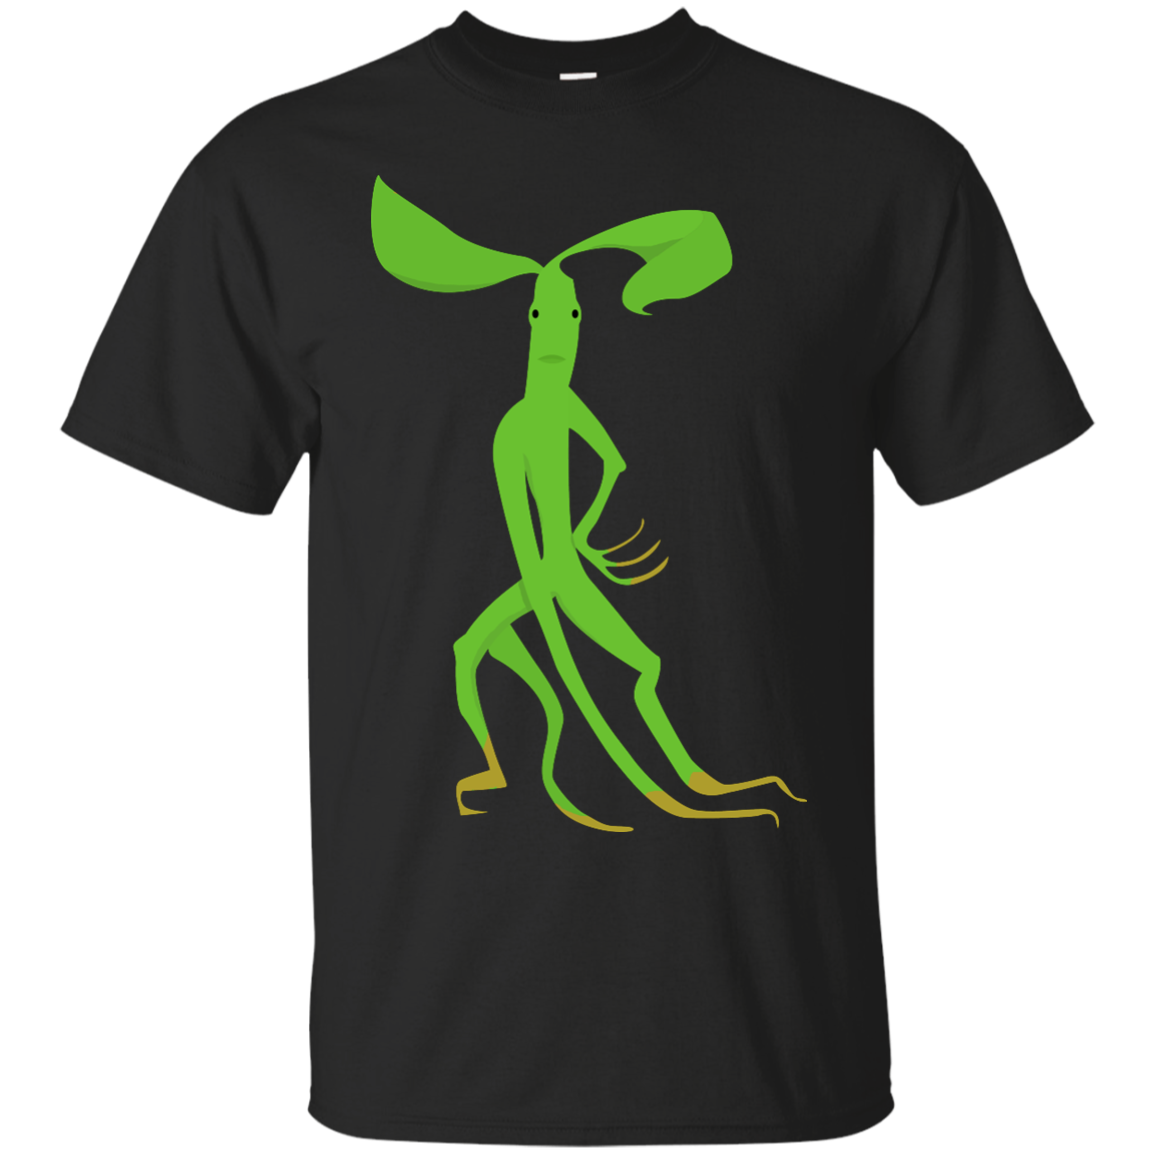 Pickett Bowtruckle From Fantastic Beasts And Where To Find Them T Shirt